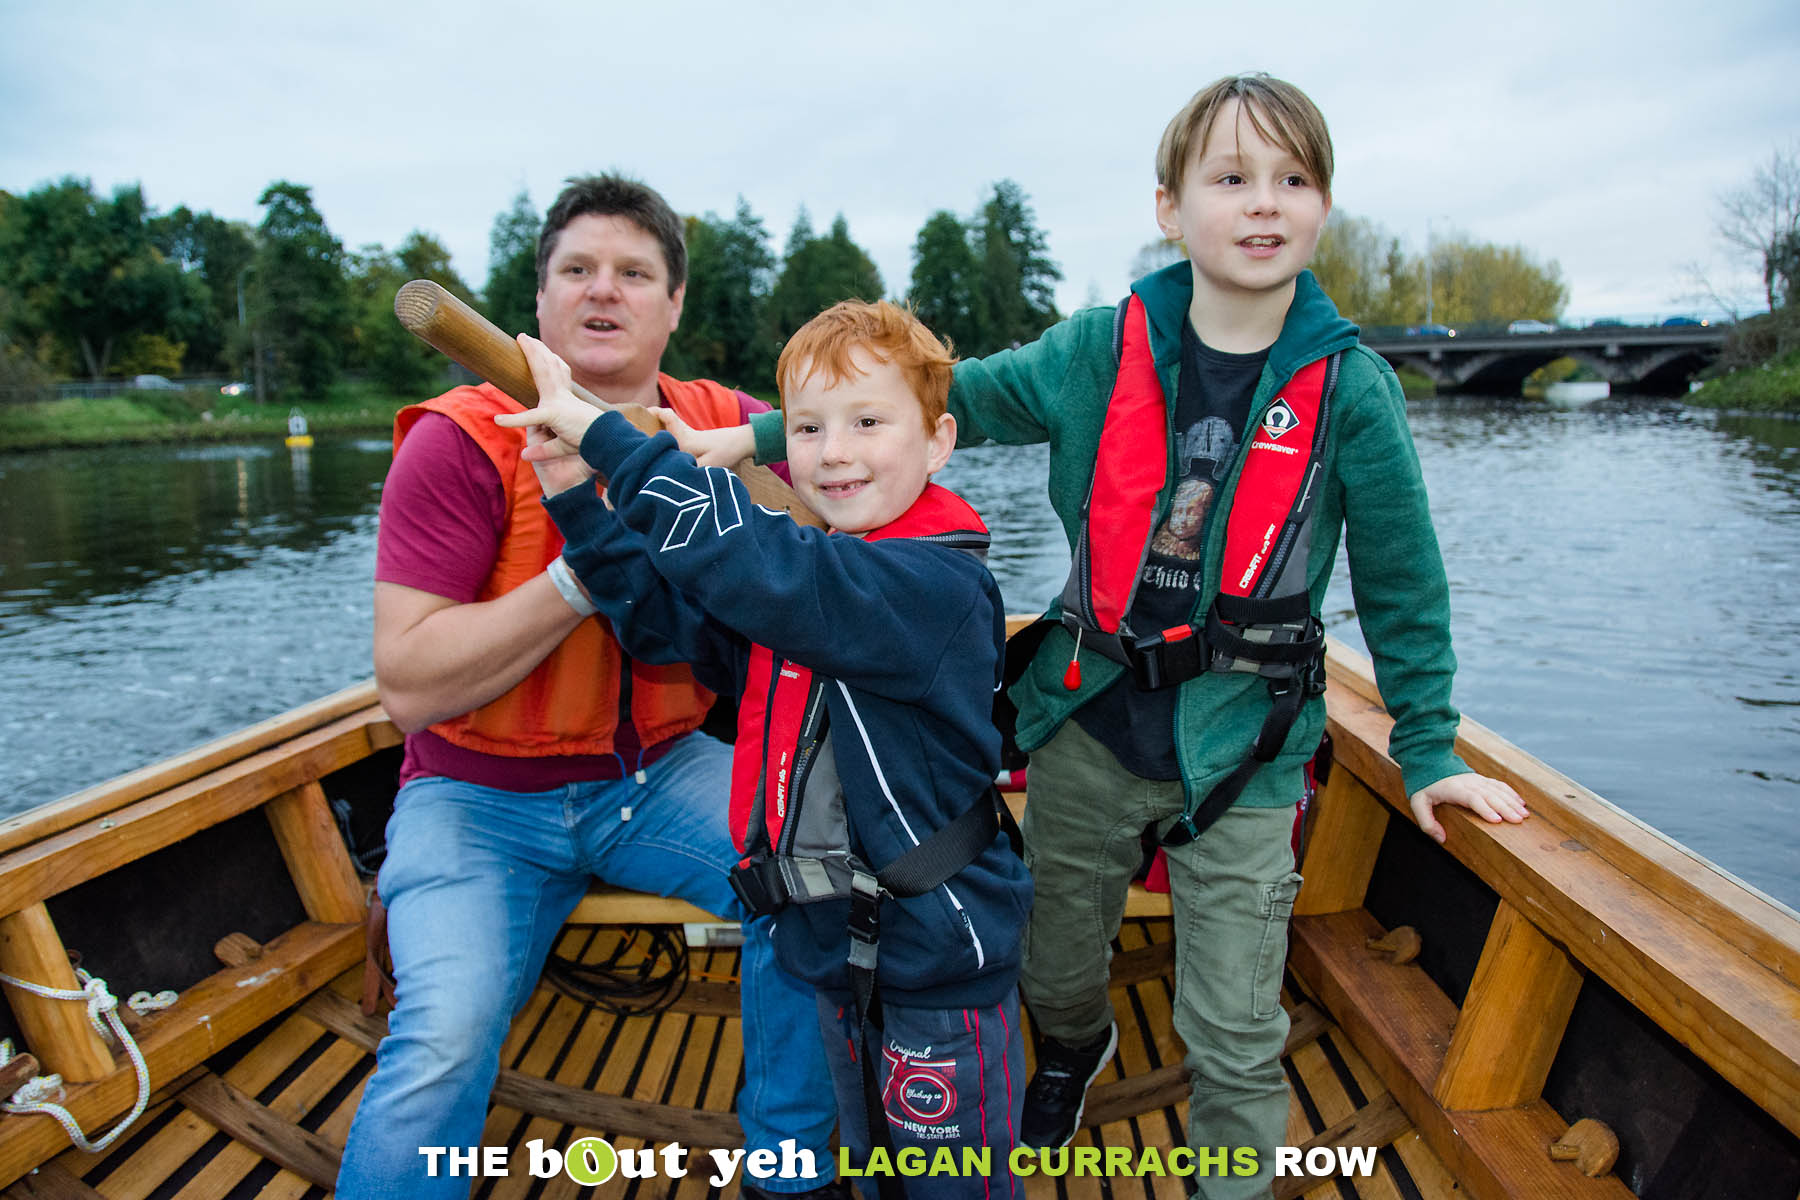 Lagan Currachs team member Tim shows young boys how to steer a currach on the River Lagan, Belfast - photo 9245.